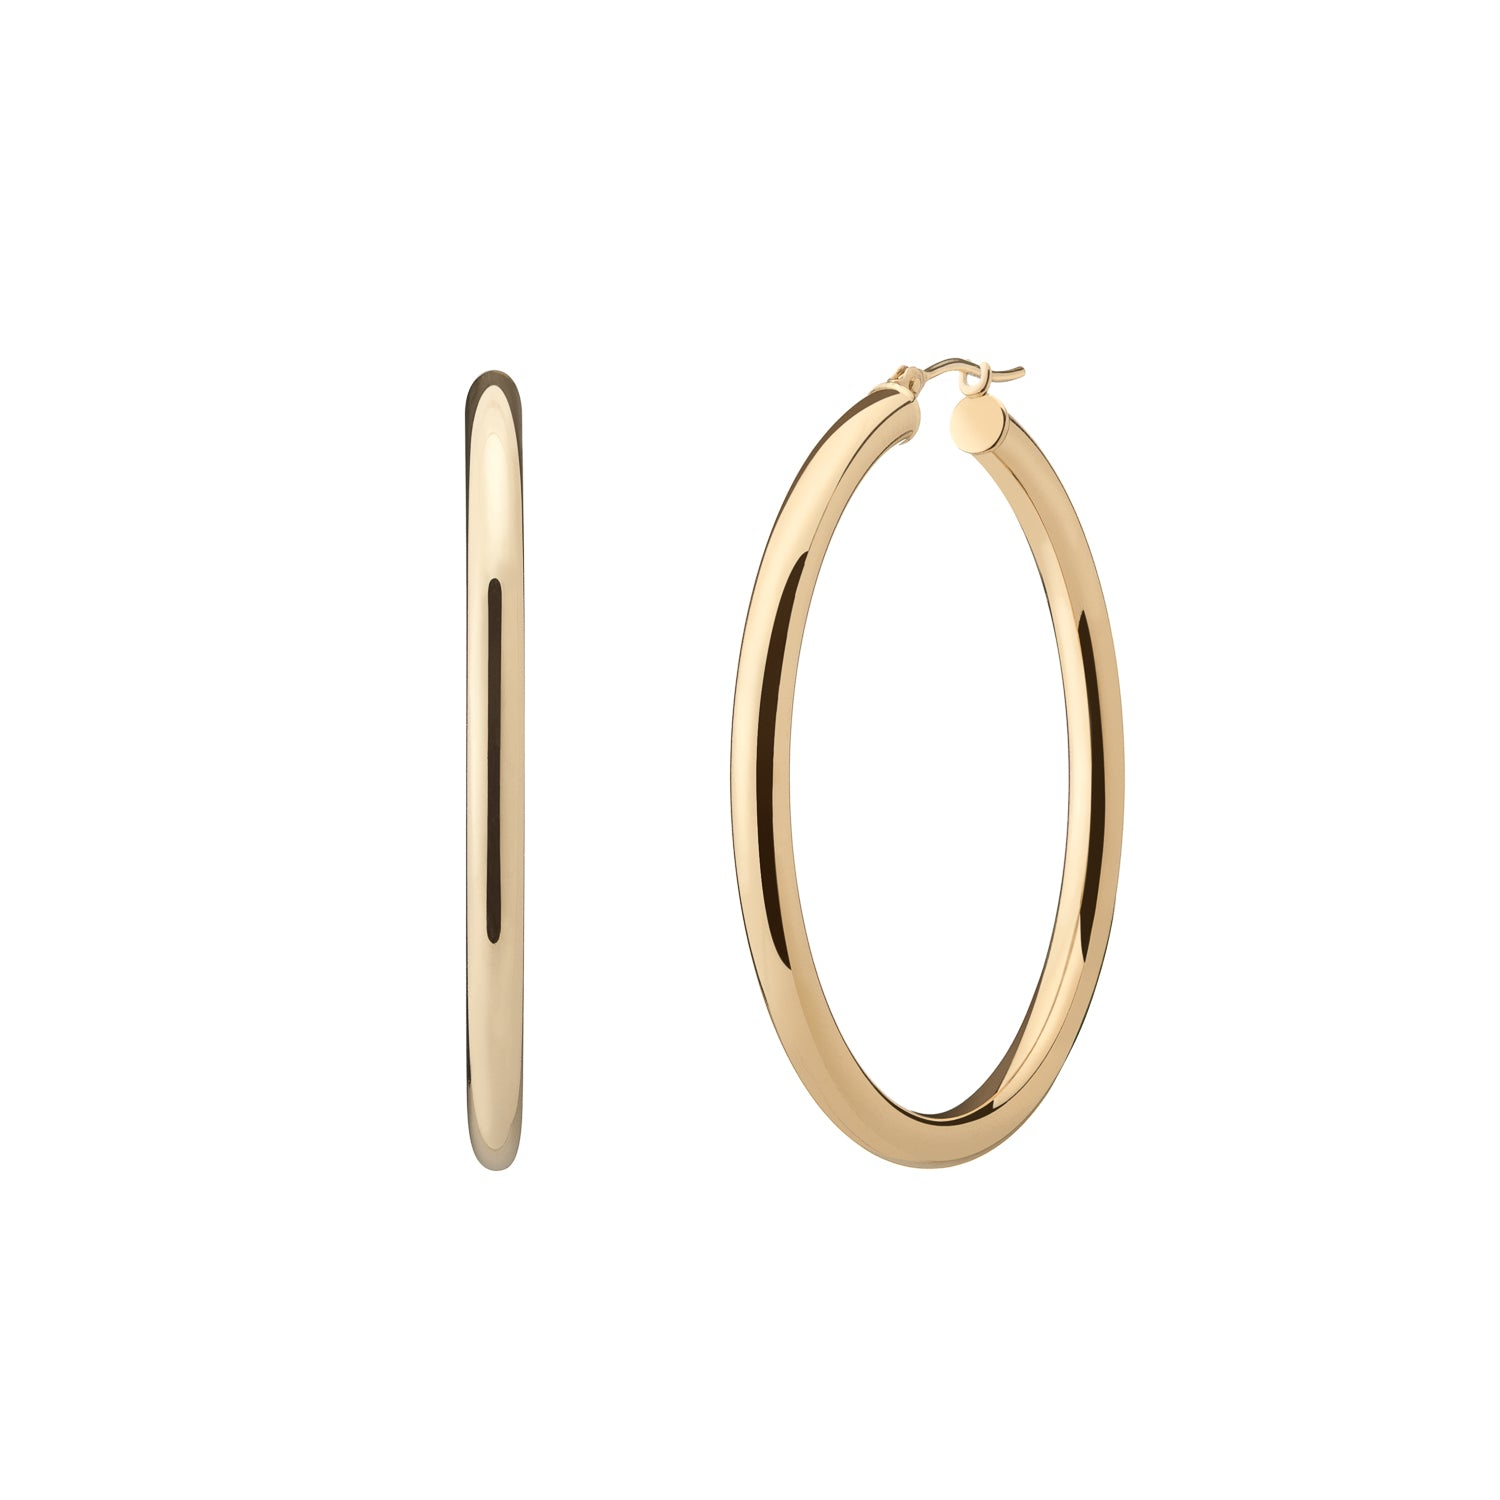 Perfect classic 14k yellow gold hollow hoops 1.5'' diameter